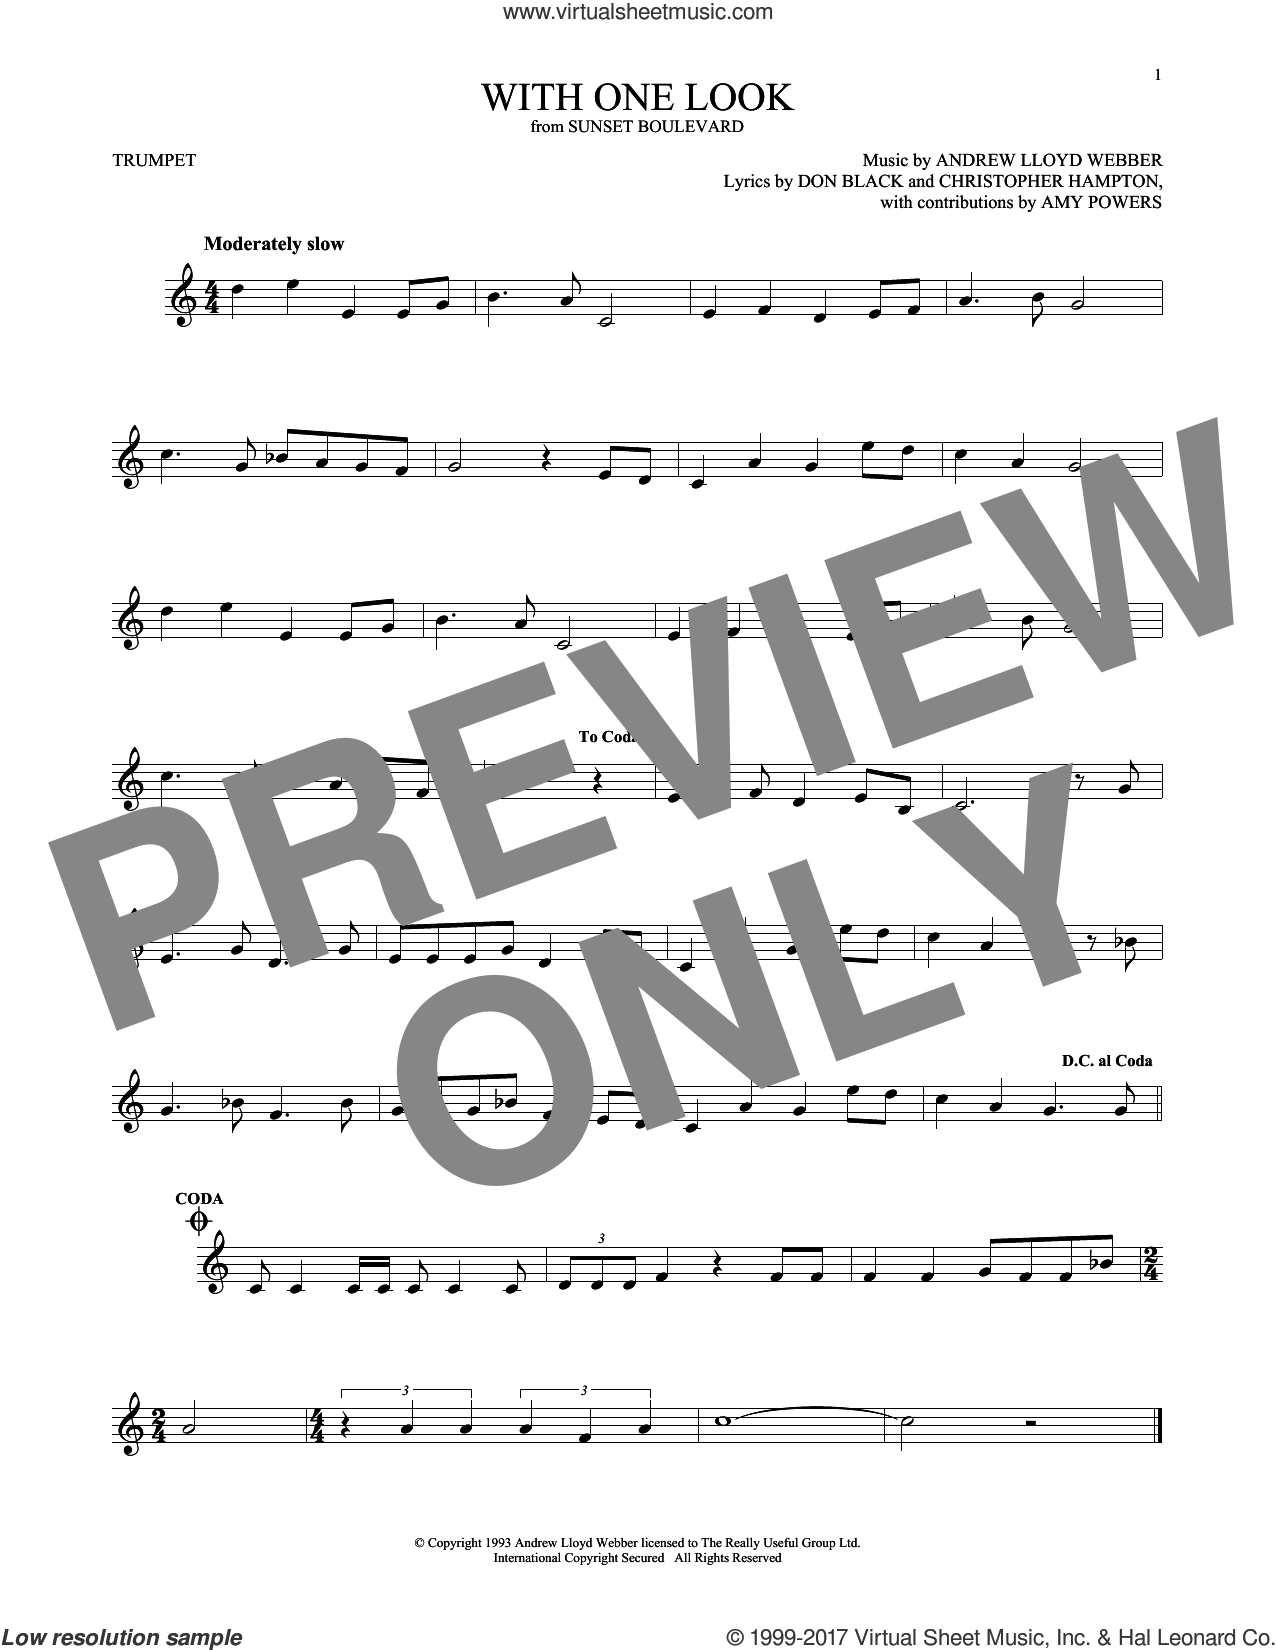 With One Look sheet music for trumpet solo by Andrew Lloyd Webber, Christopher Hampton and Don Black, intermediate skill level